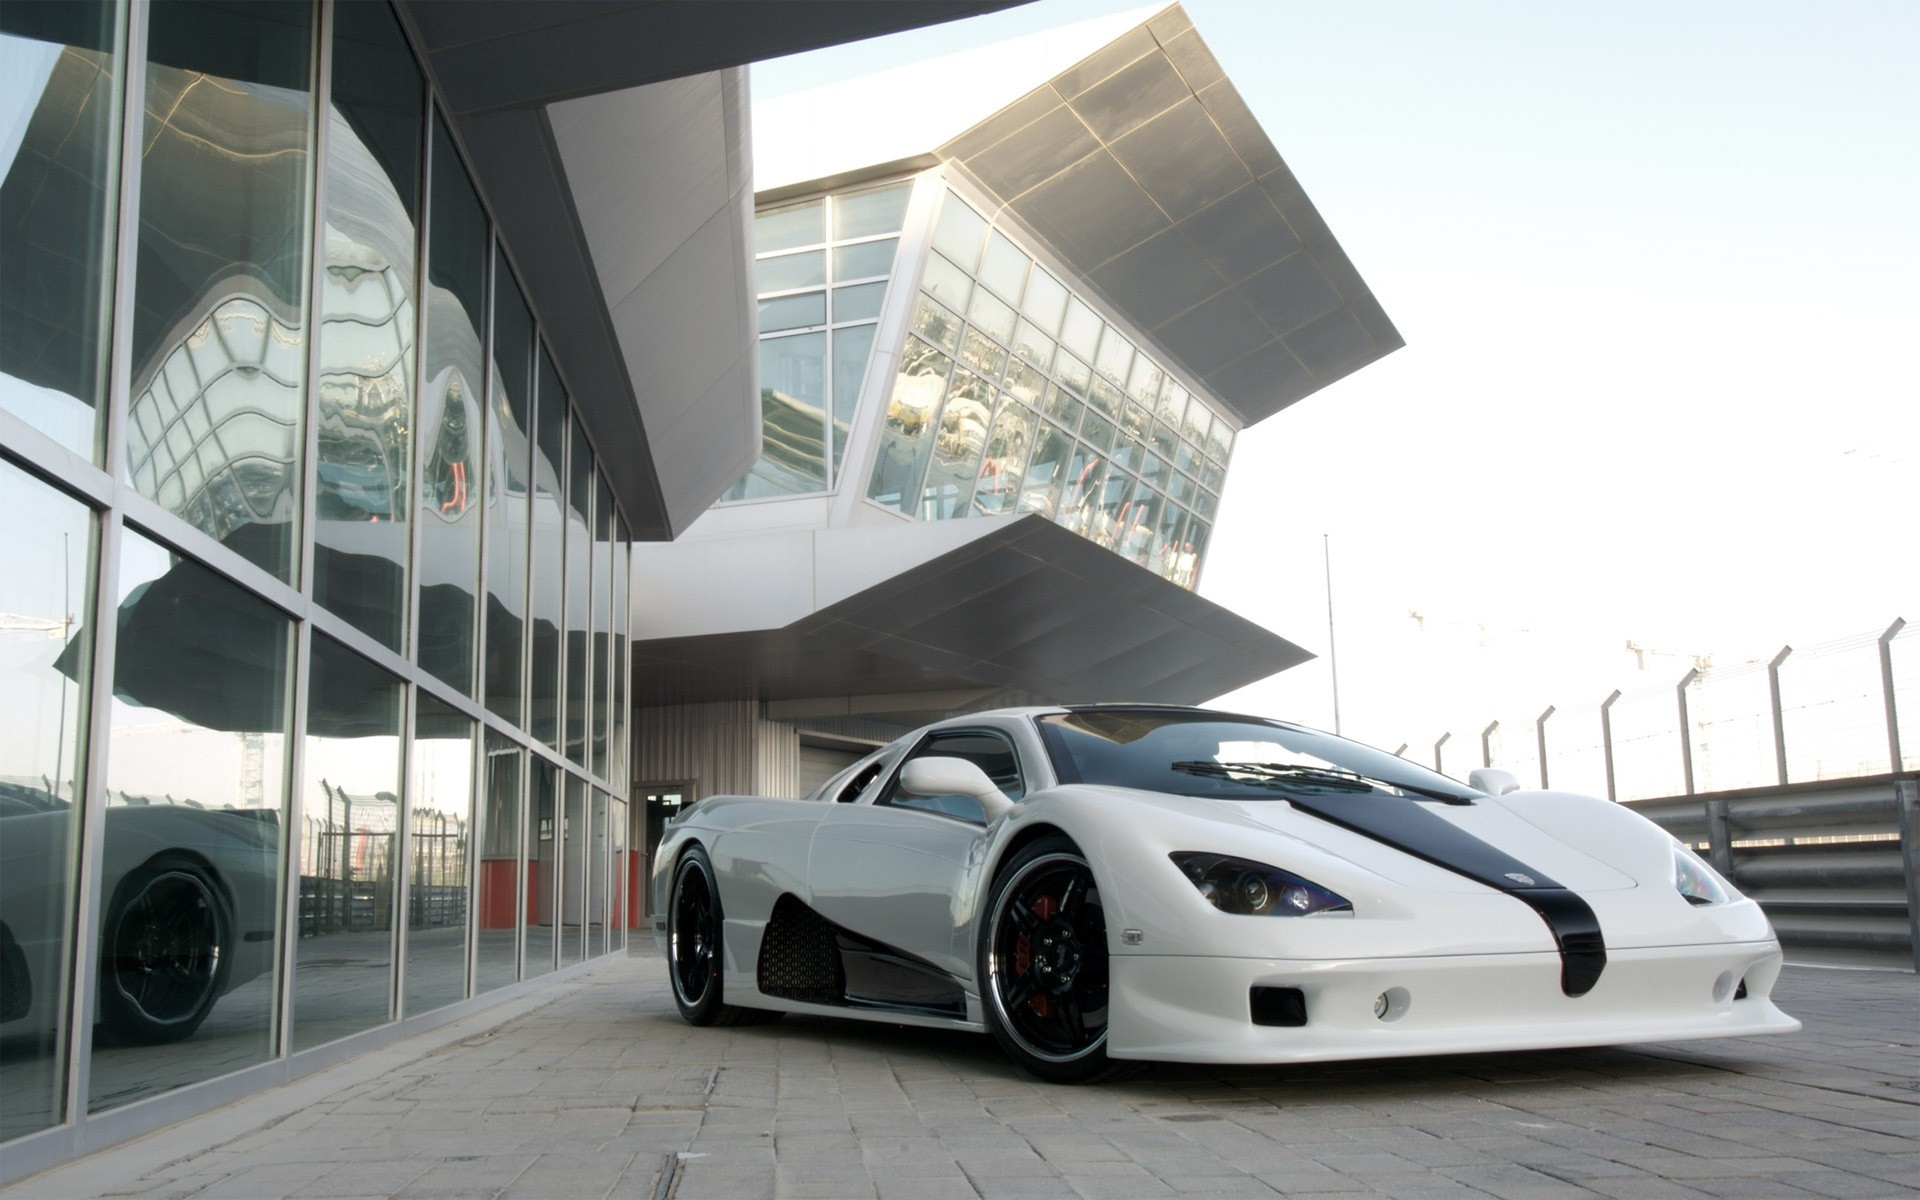 Ssc ultimate aero xt 2013 2015 ssc is exploring new territory with the estimating on the ultimate aero xt rather than doing a standard set value ssc has concocted a graduated estimating sciox Image collections